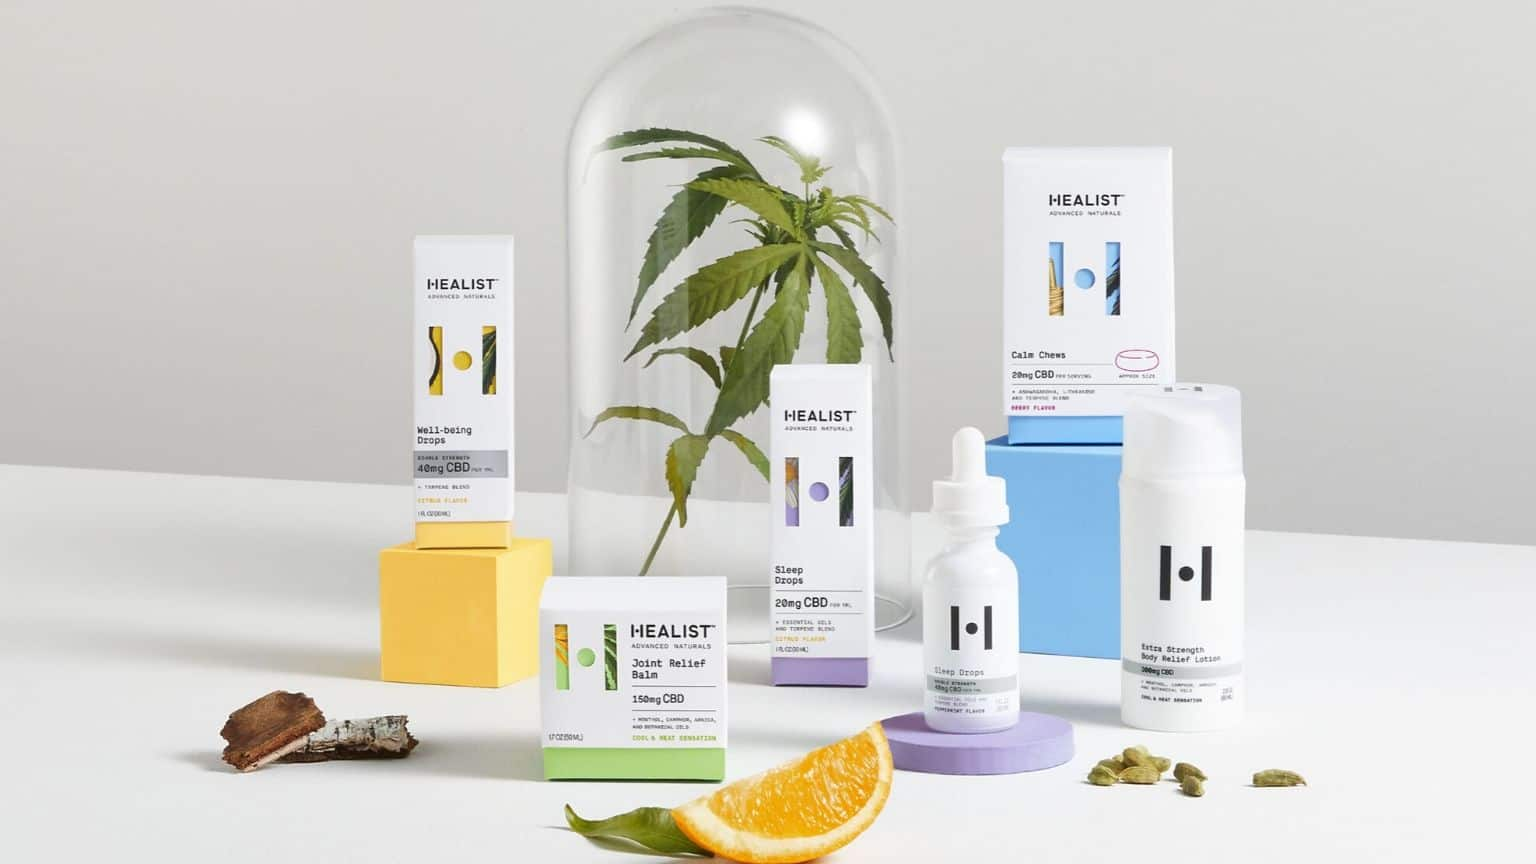 healist cbd products with terpenes